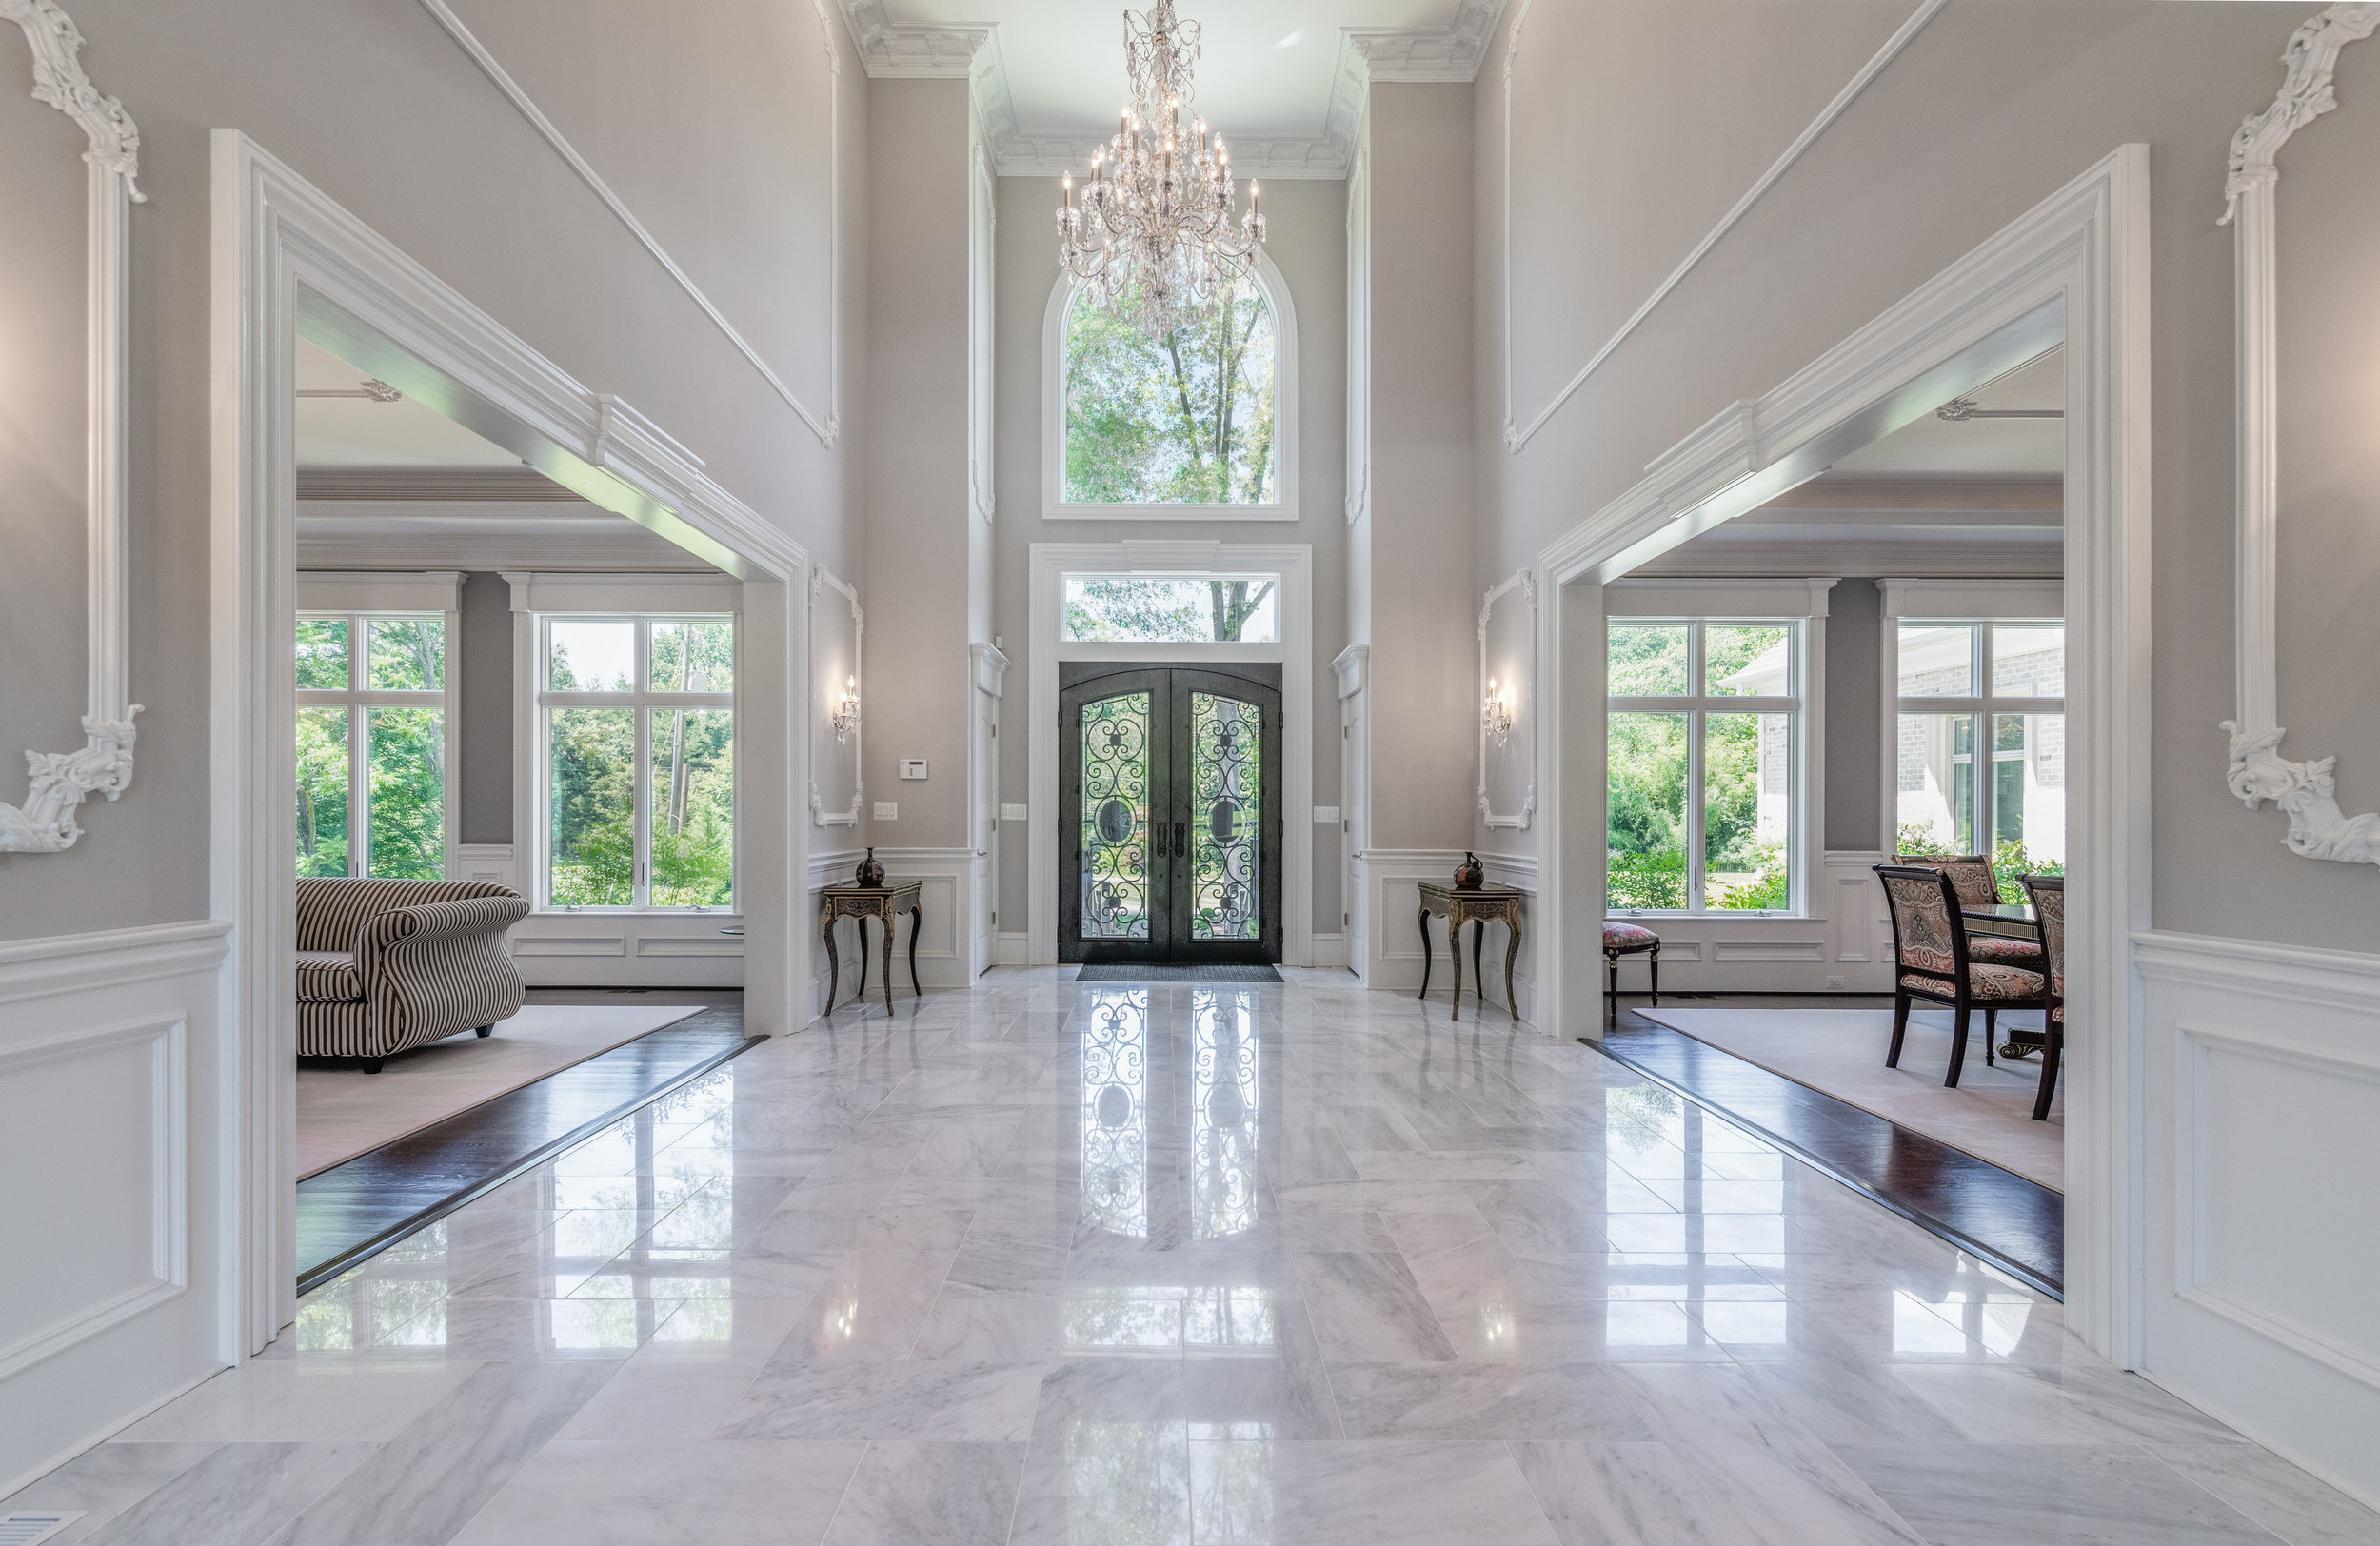 Two-story Entry Foyer features marble flooring and elegant crown moldings